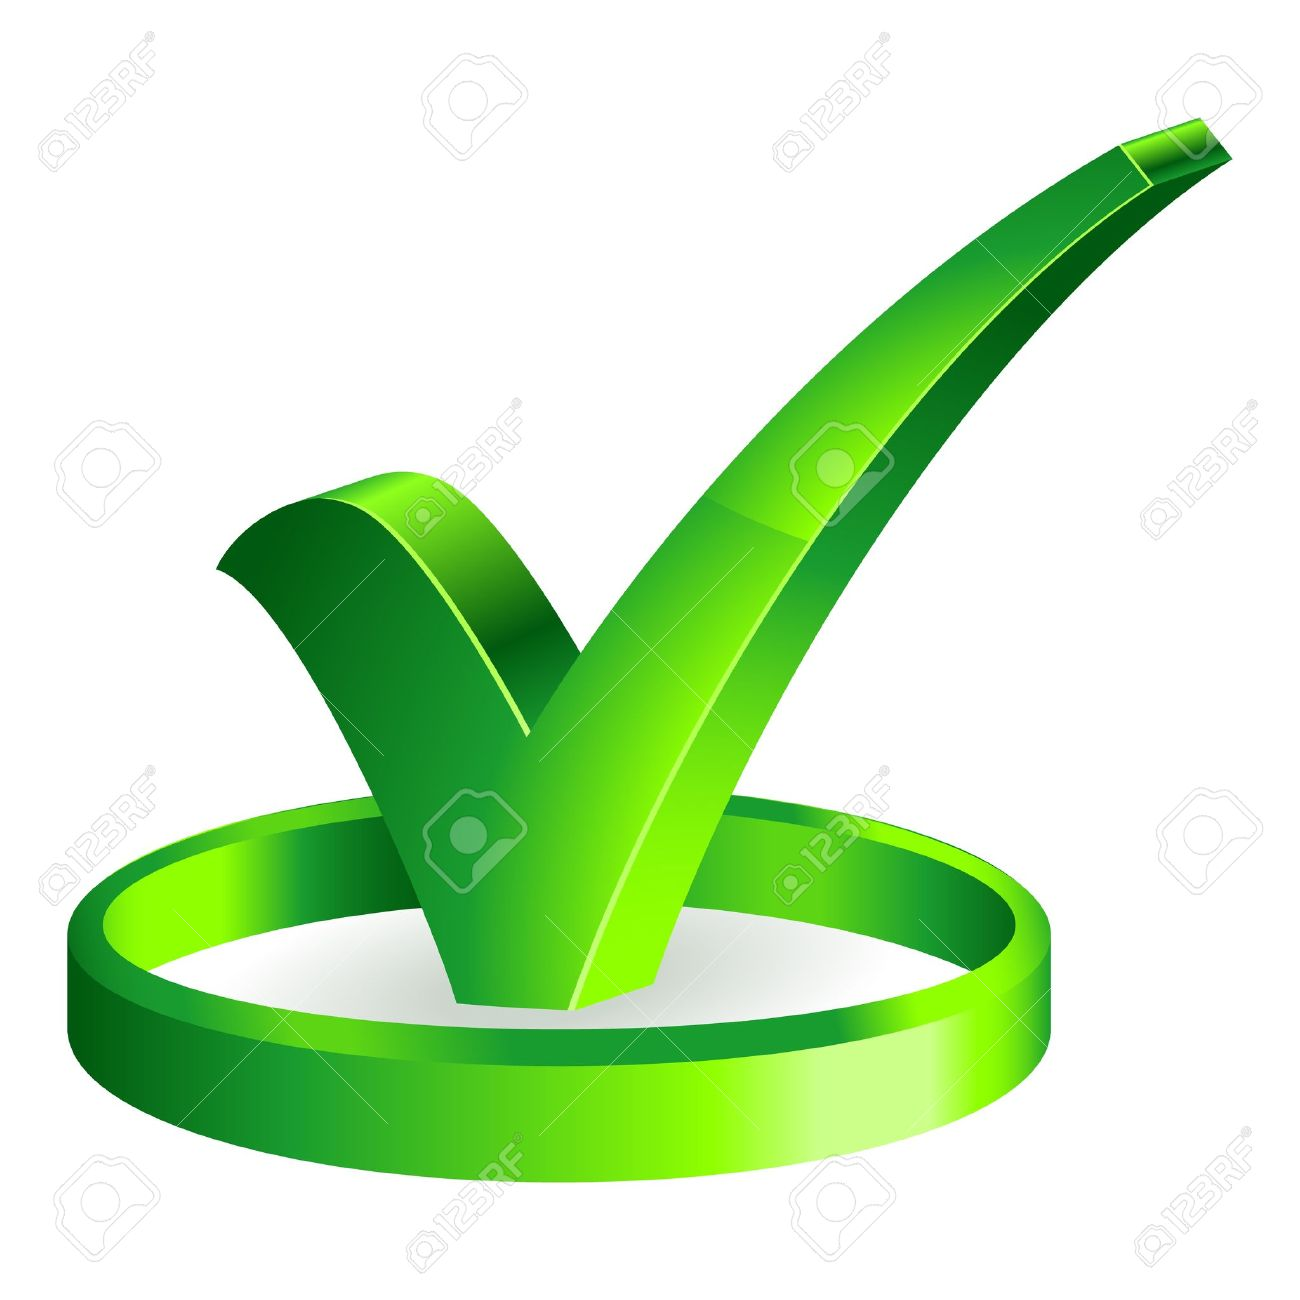 3d Check Mark Icon Royalty Free Cliparts Vectors And Stock